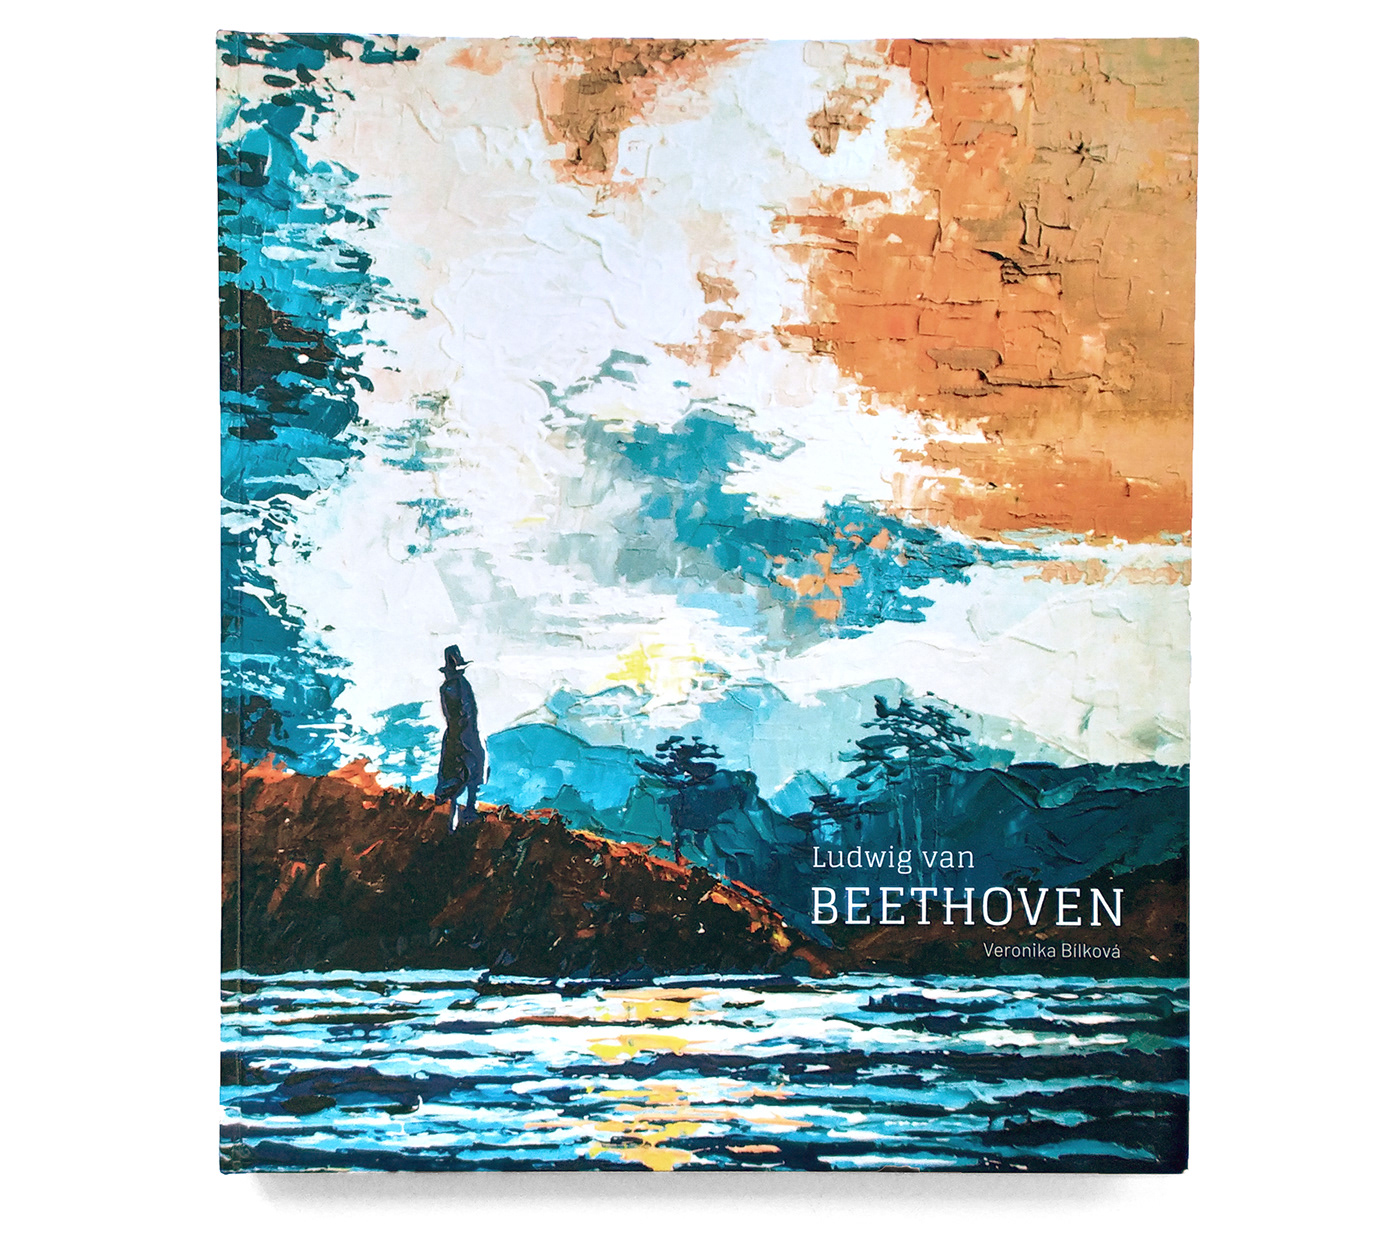 the book about Ludwig van Beethoven